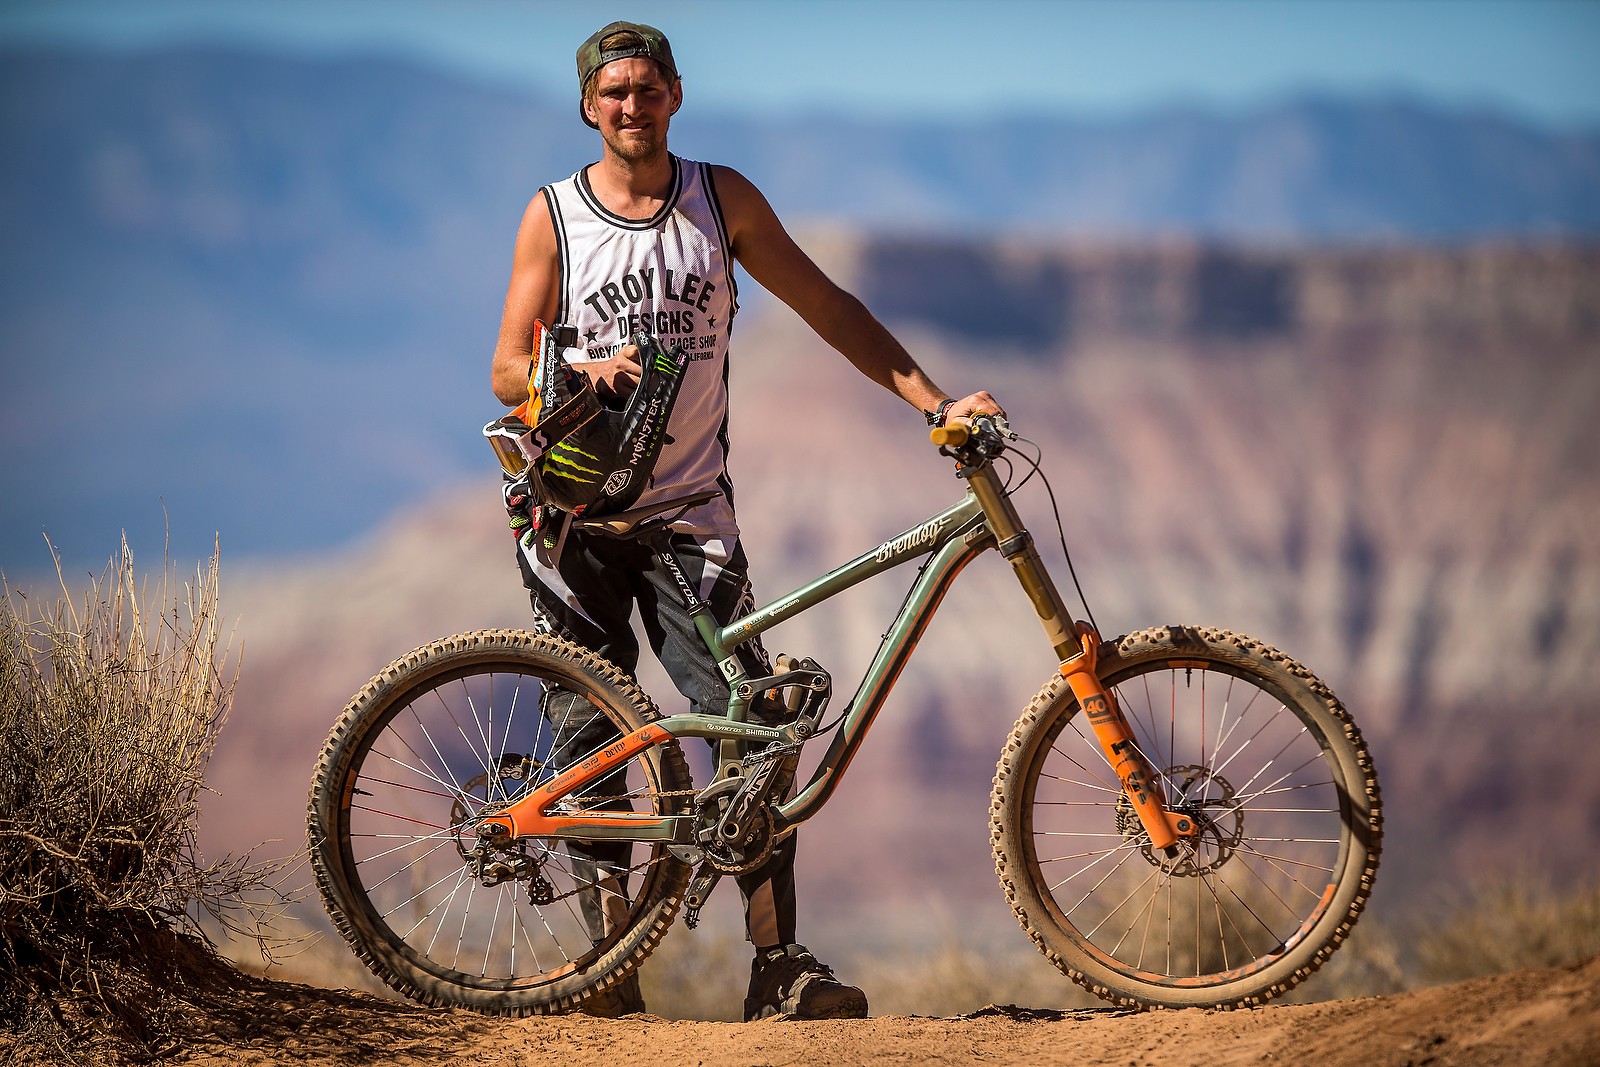 Brendan Fairclough's Scott Gambler - Pro Bikes - Red Bull Rampage - Mountain Biking Pictures - Vital MTB